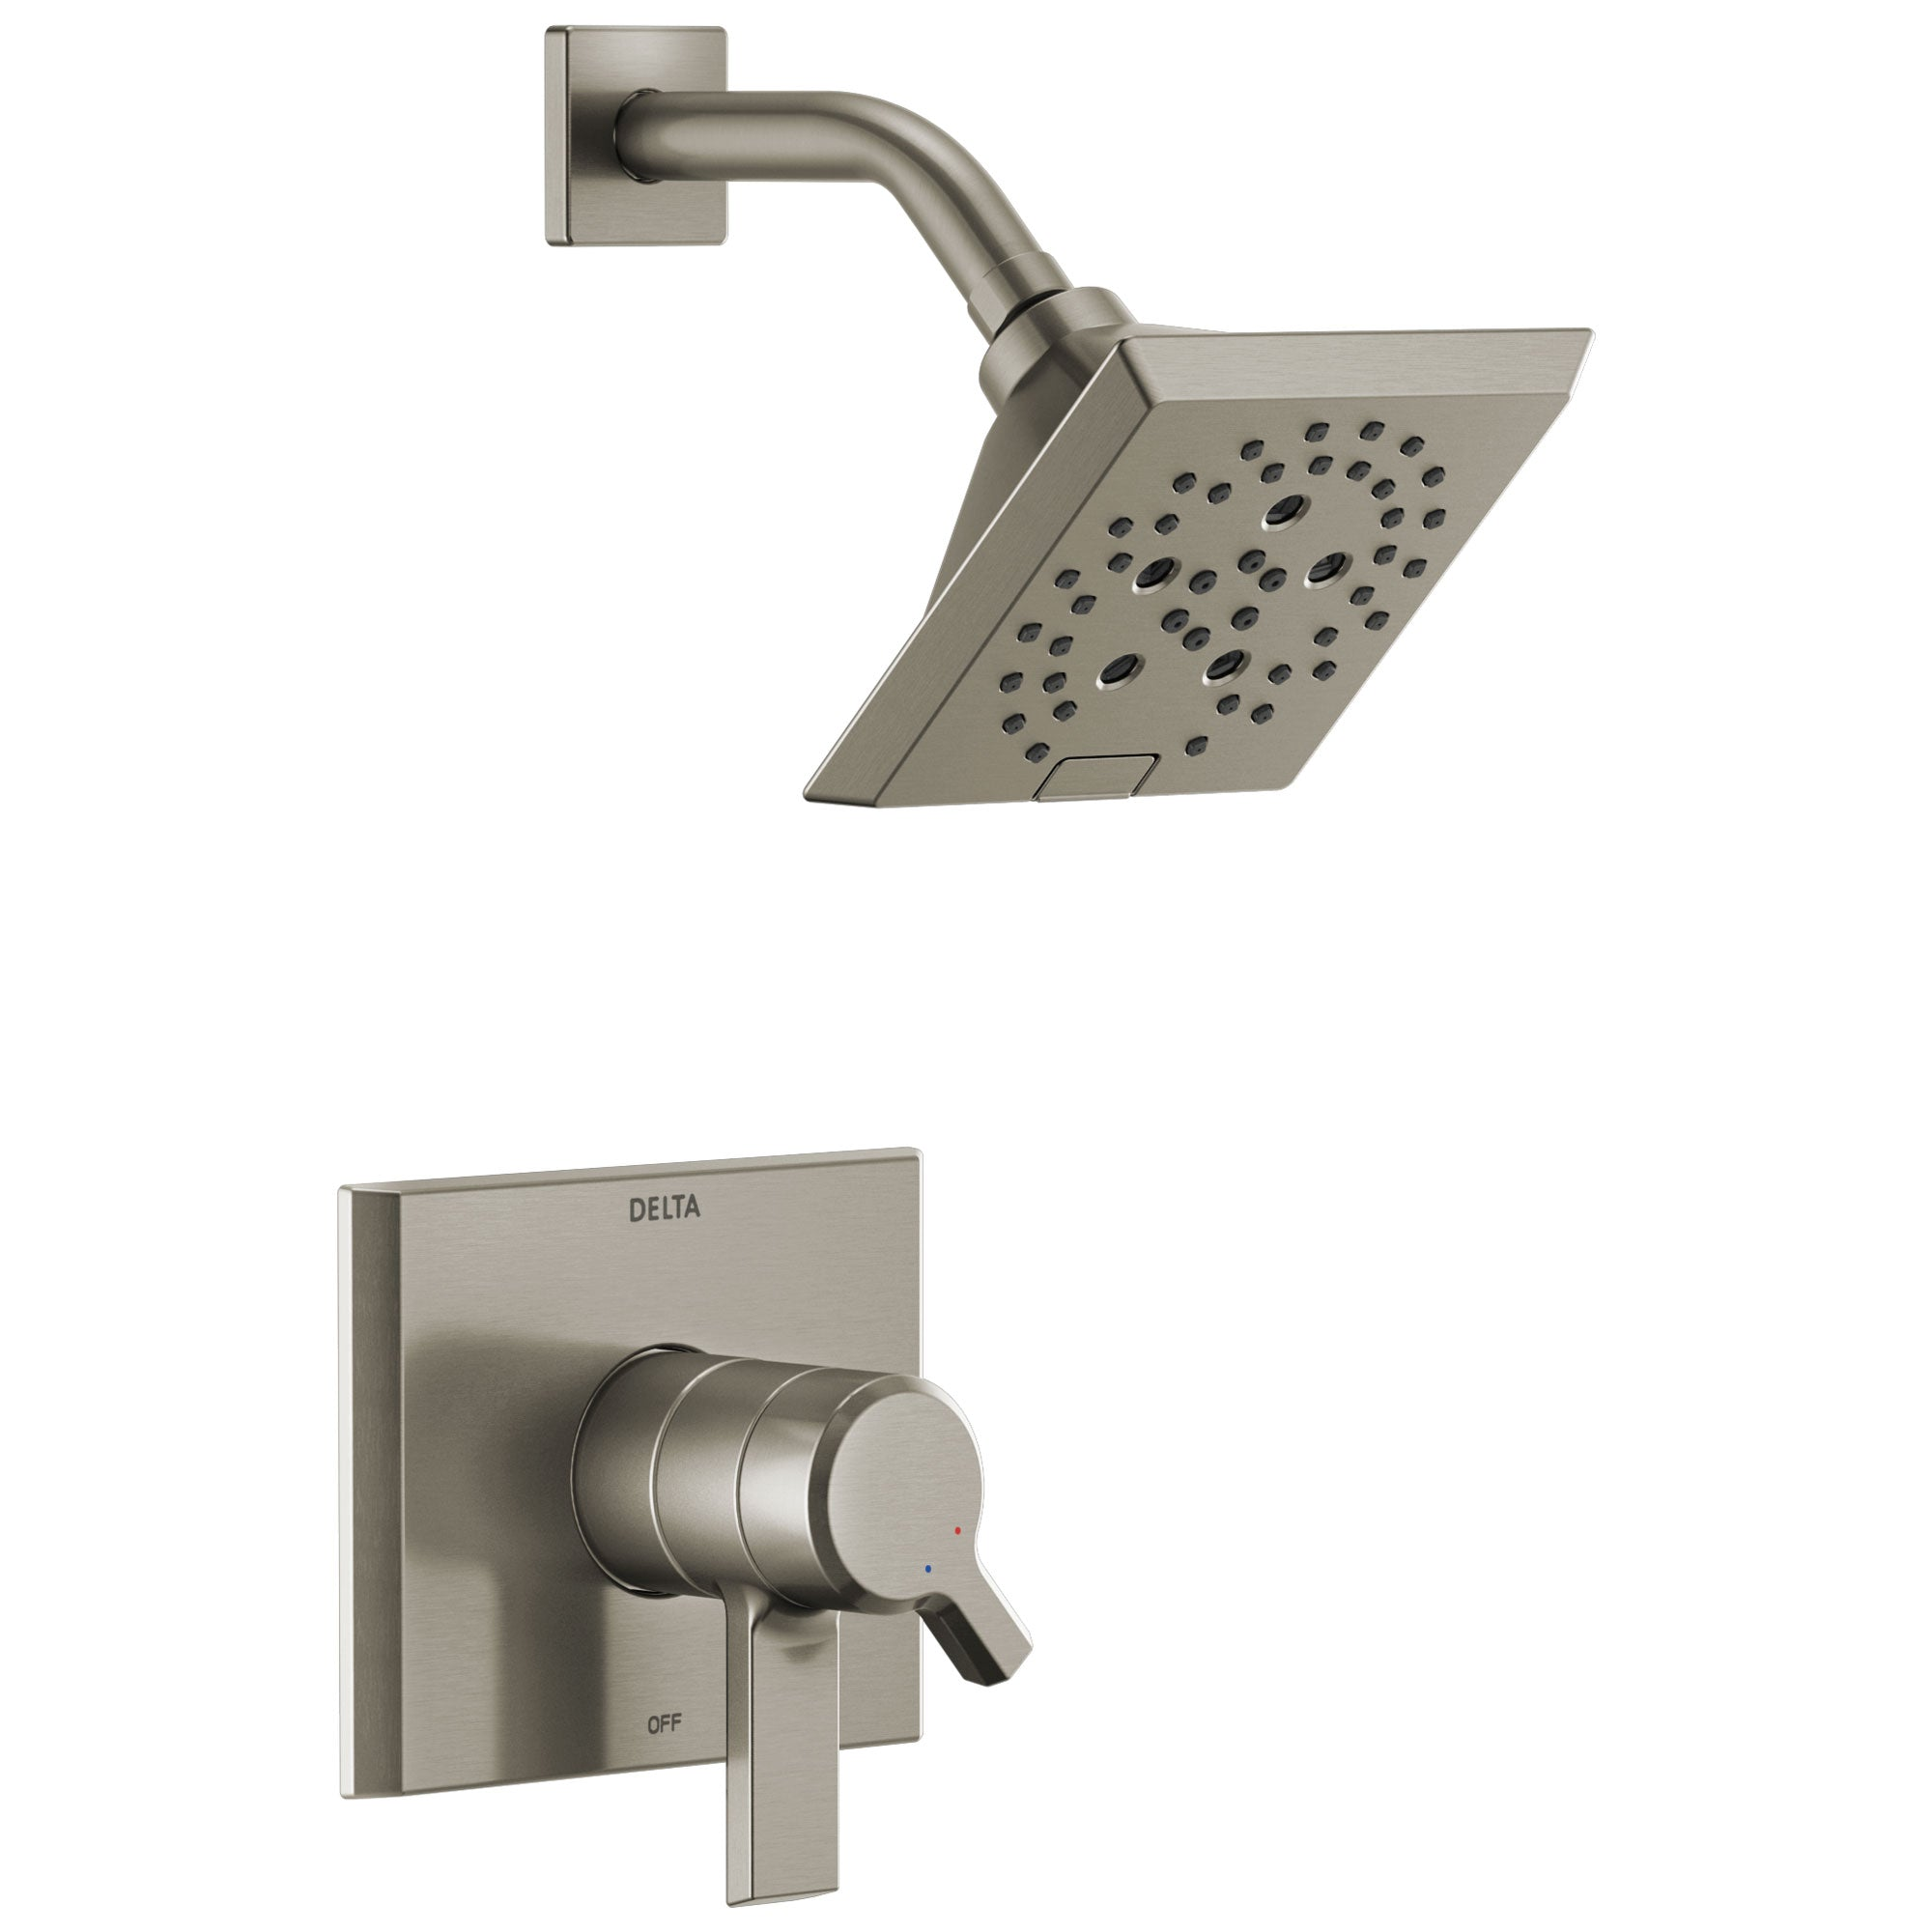 Delta Pivotal Modern Stainless Steel Finish H2Okinetic Shower only Faucet Includes 17 Series Cartridge, Handles, and Valve with Stops D3356V